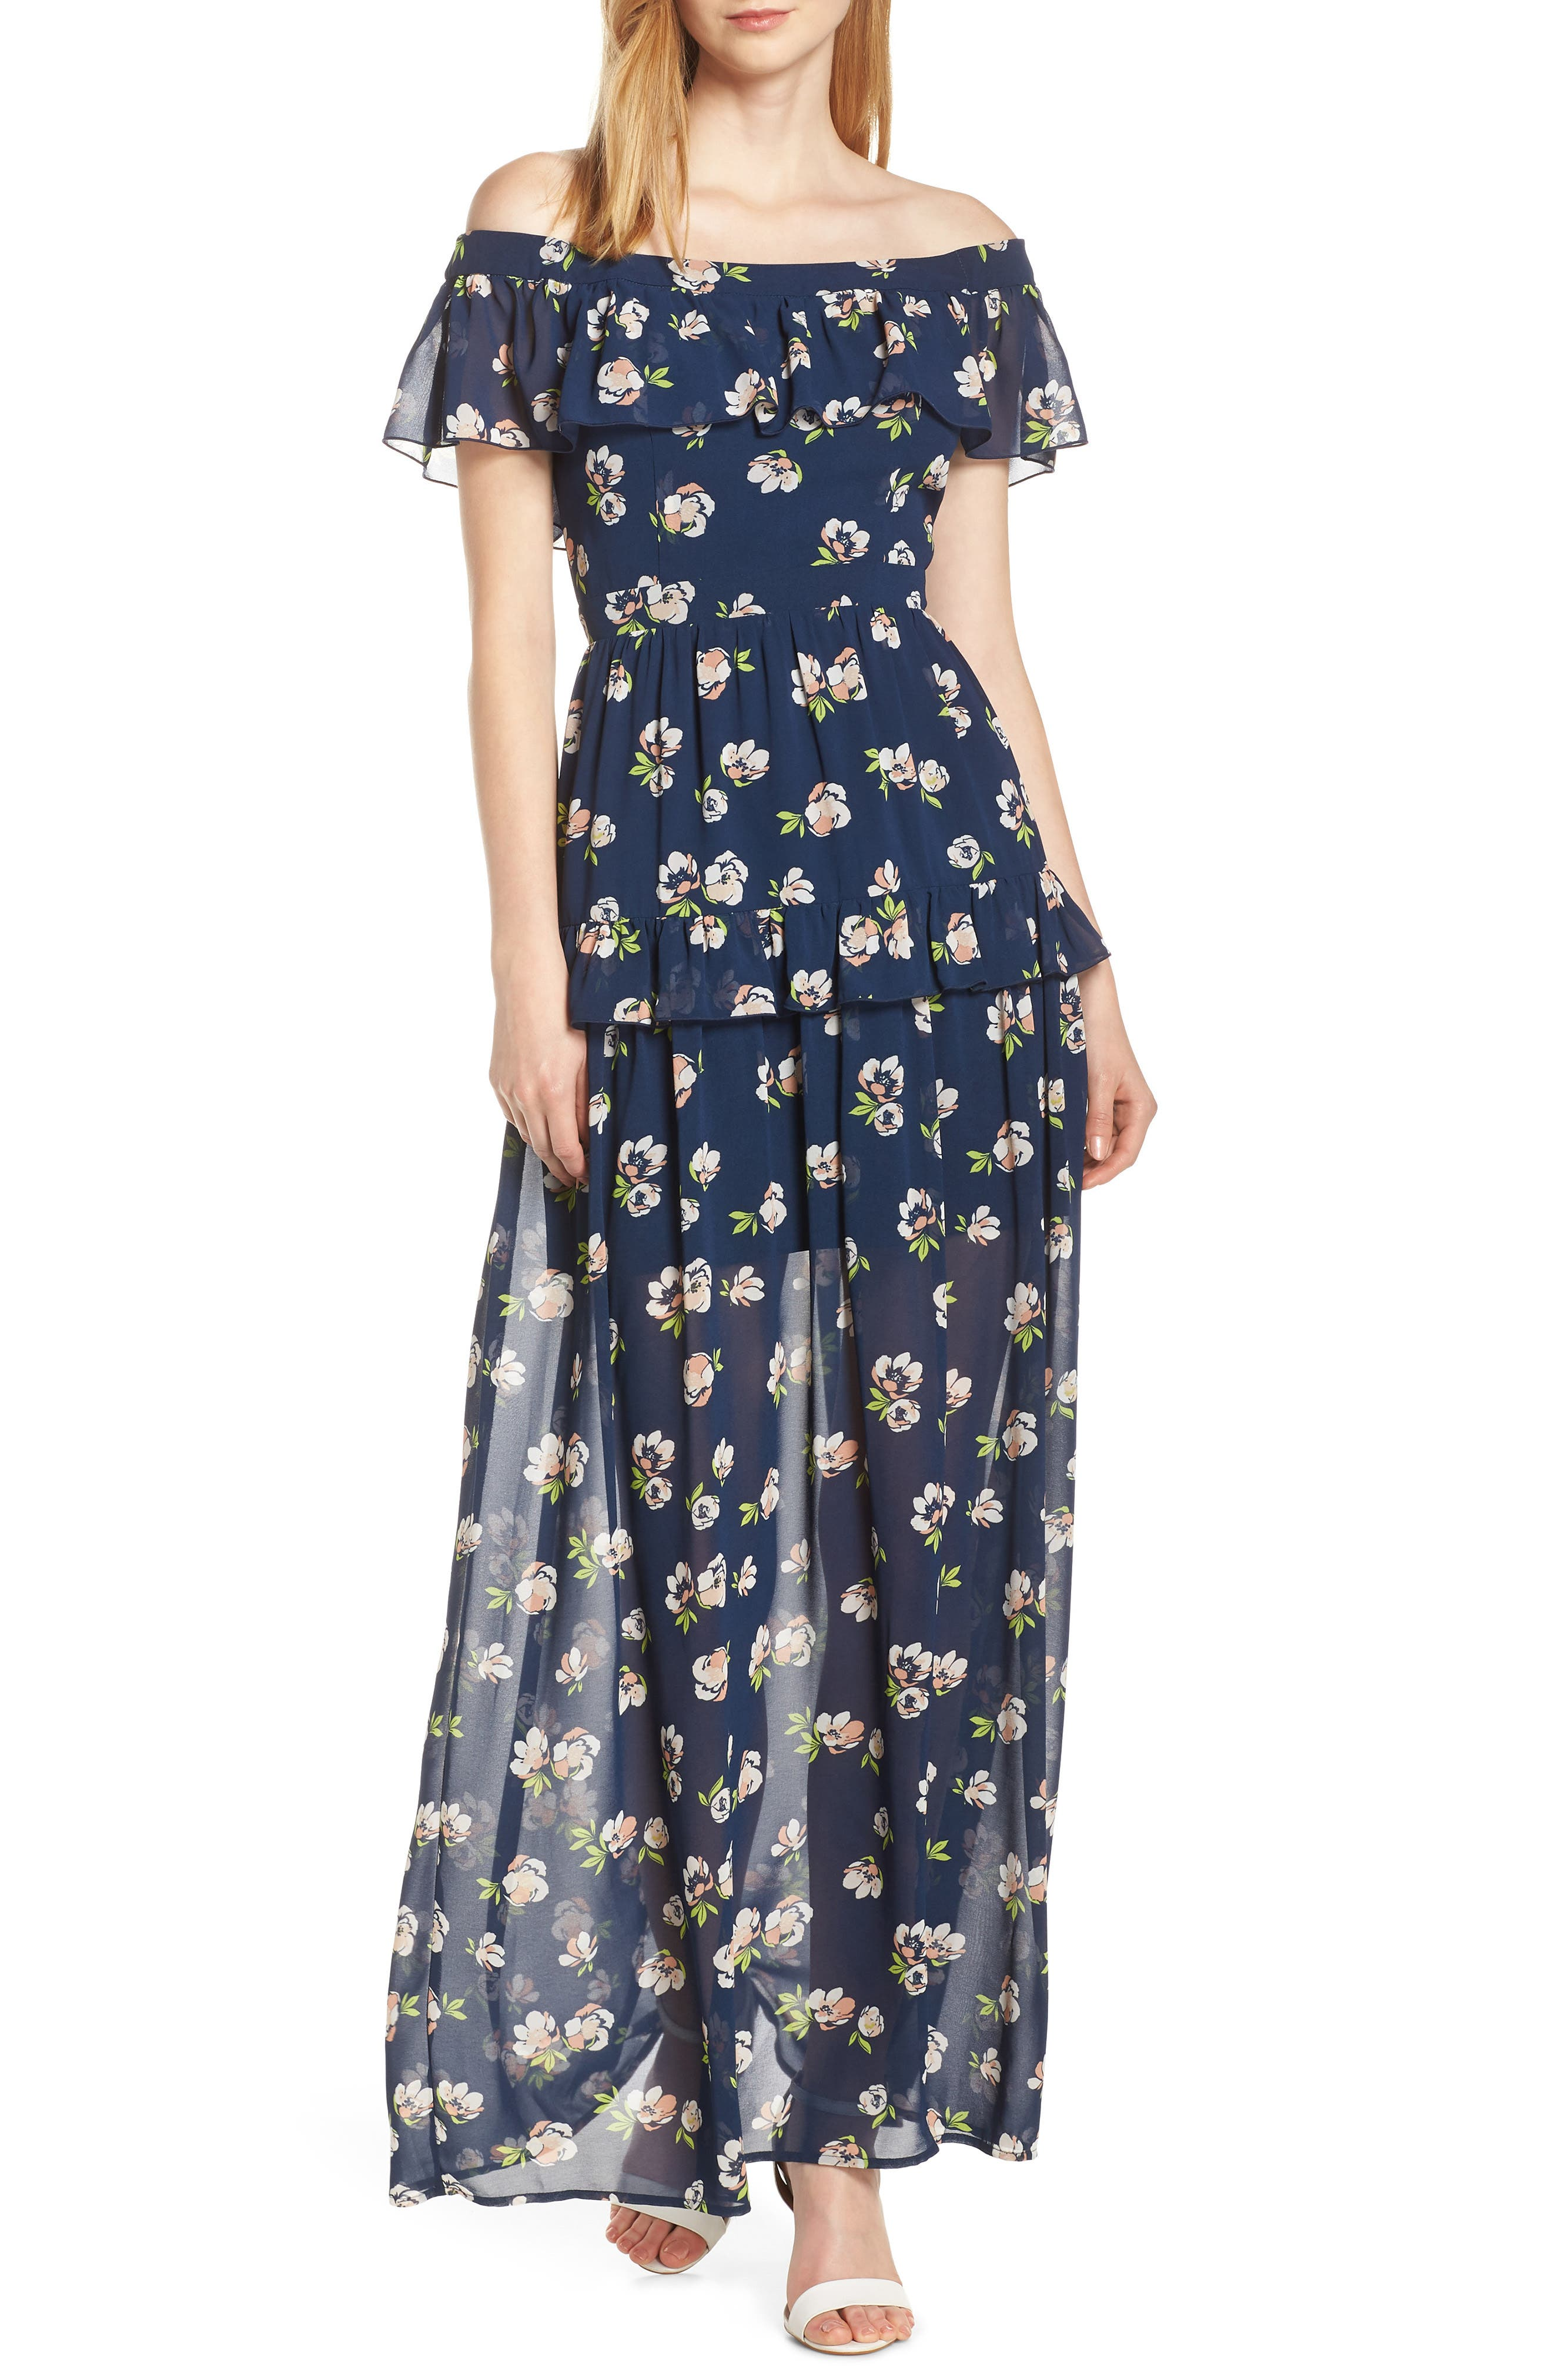 CHARLES HENRY Off the Shoulder Ruffle Maxi Dress, Main, color, NAVY PEACH FLORAL